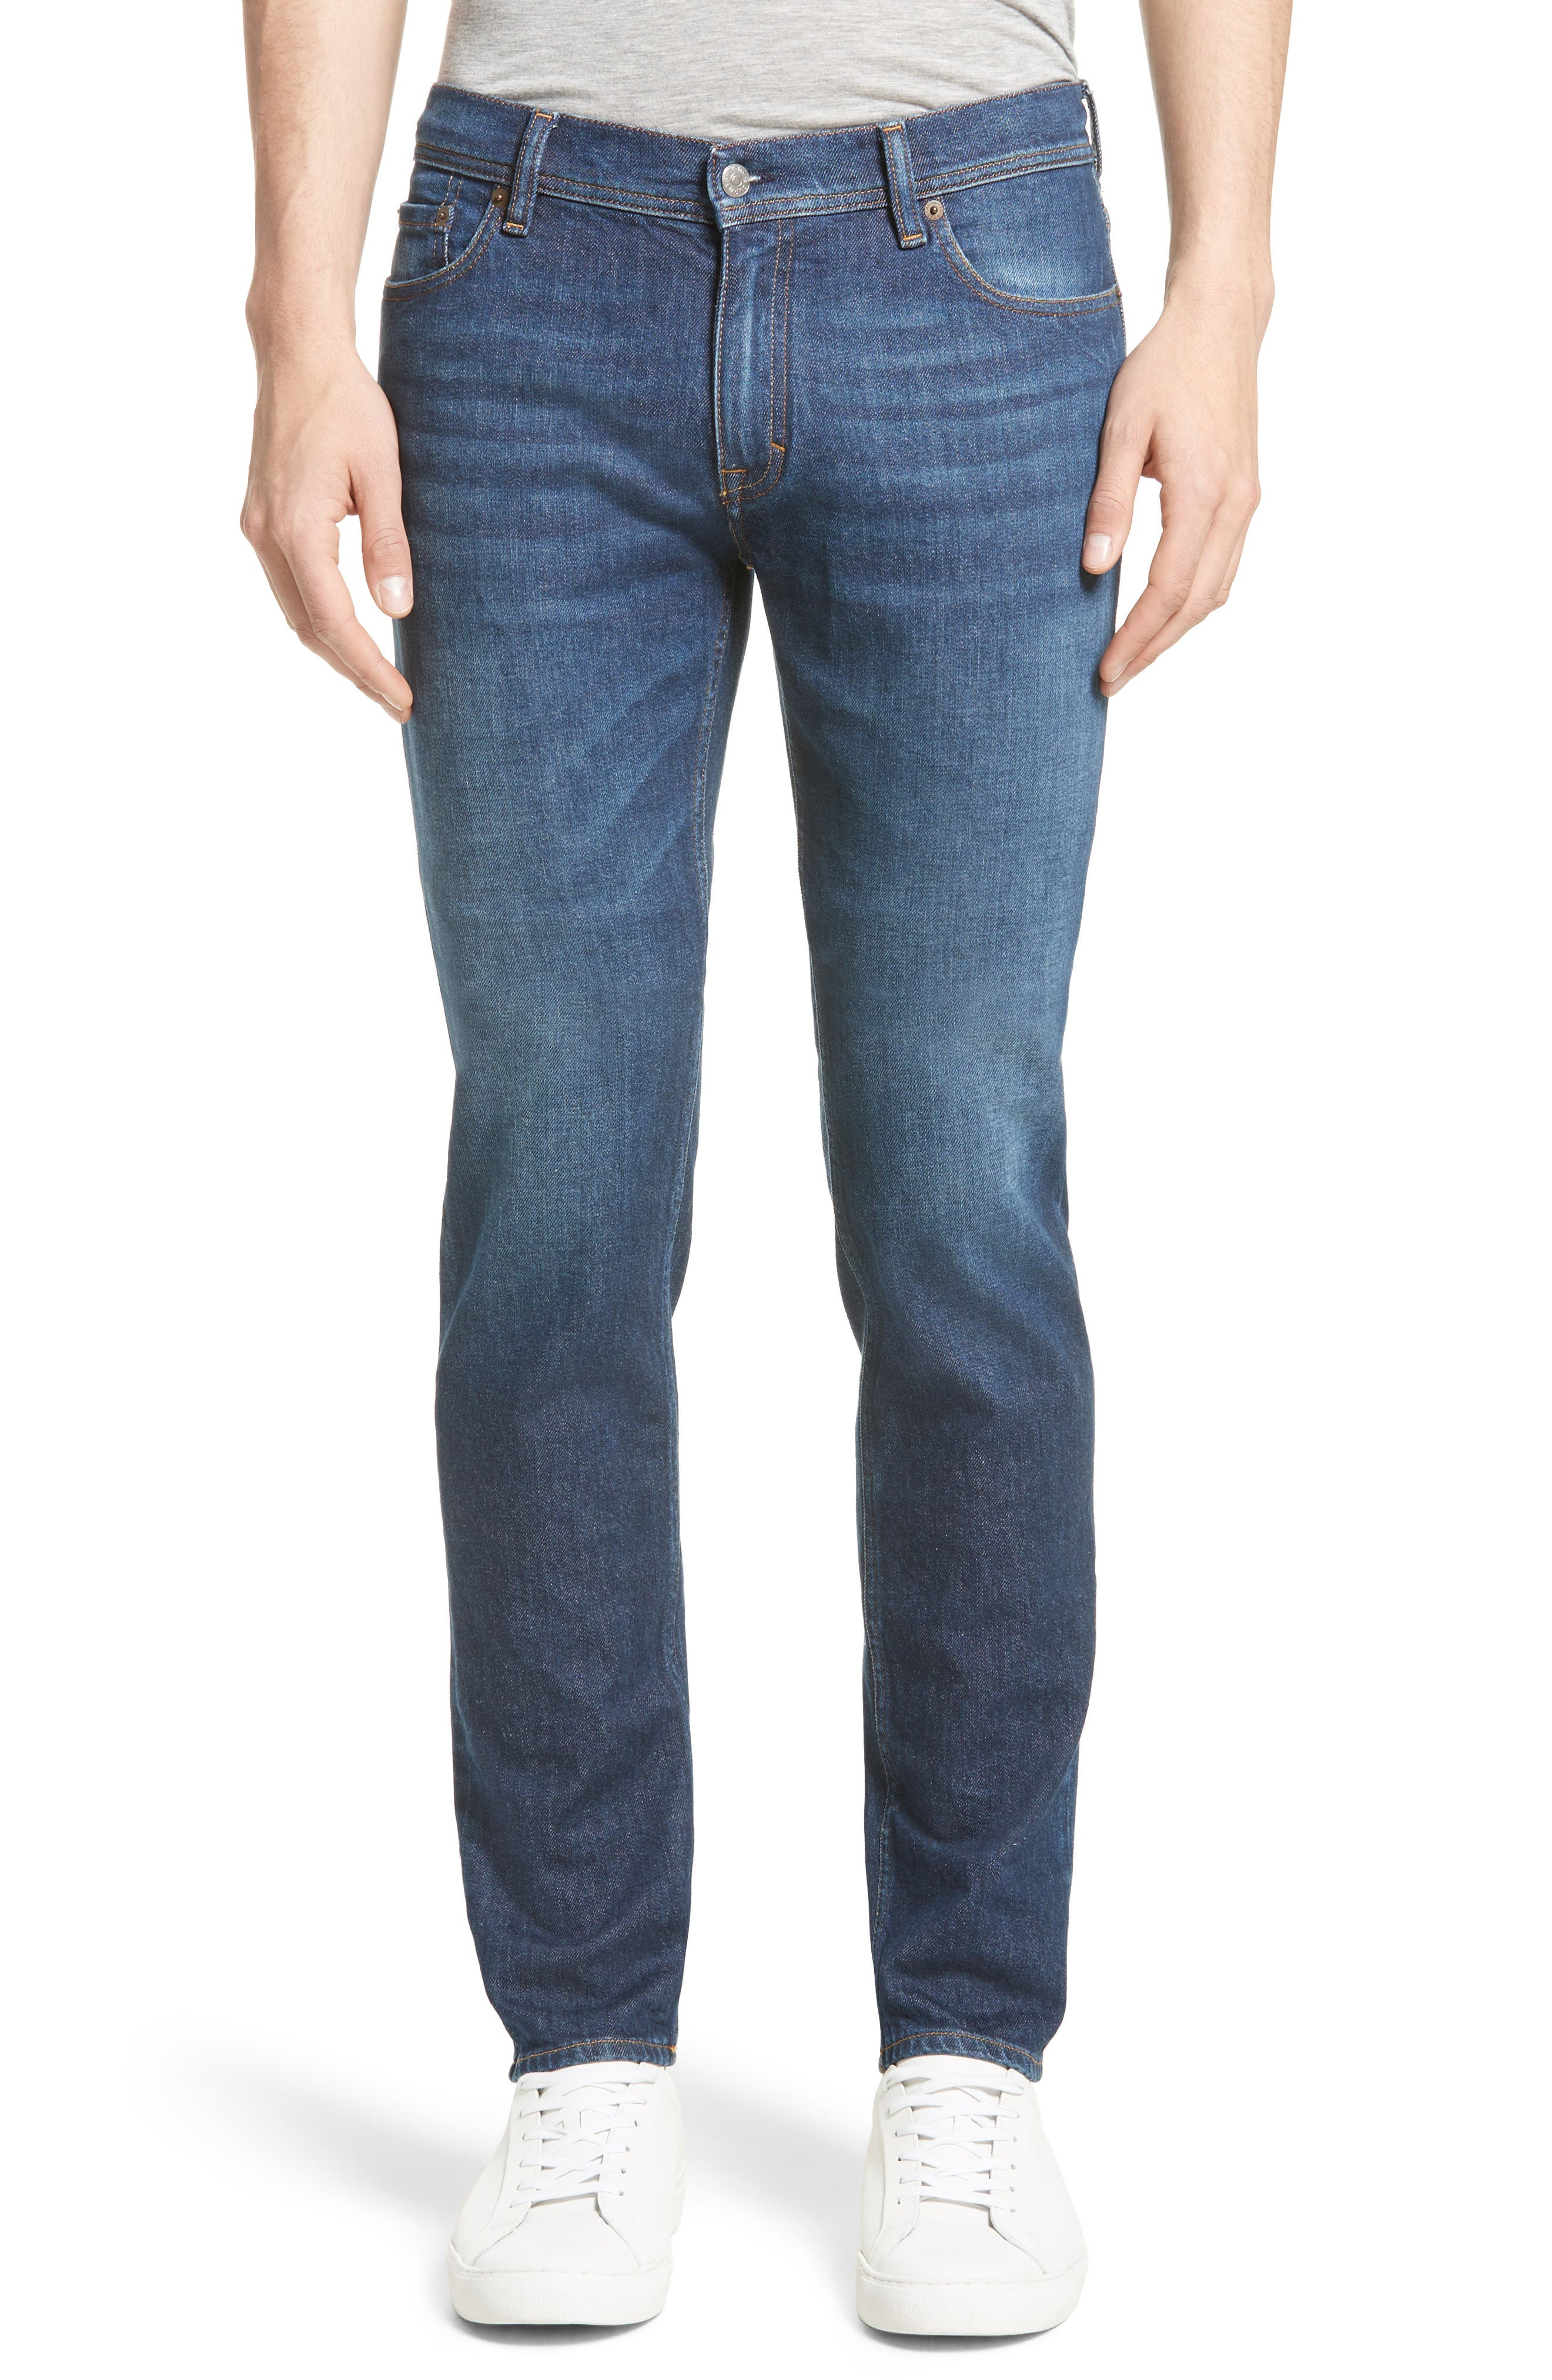 North Skinny Jeans,                         Main,                         color, Dark Blue